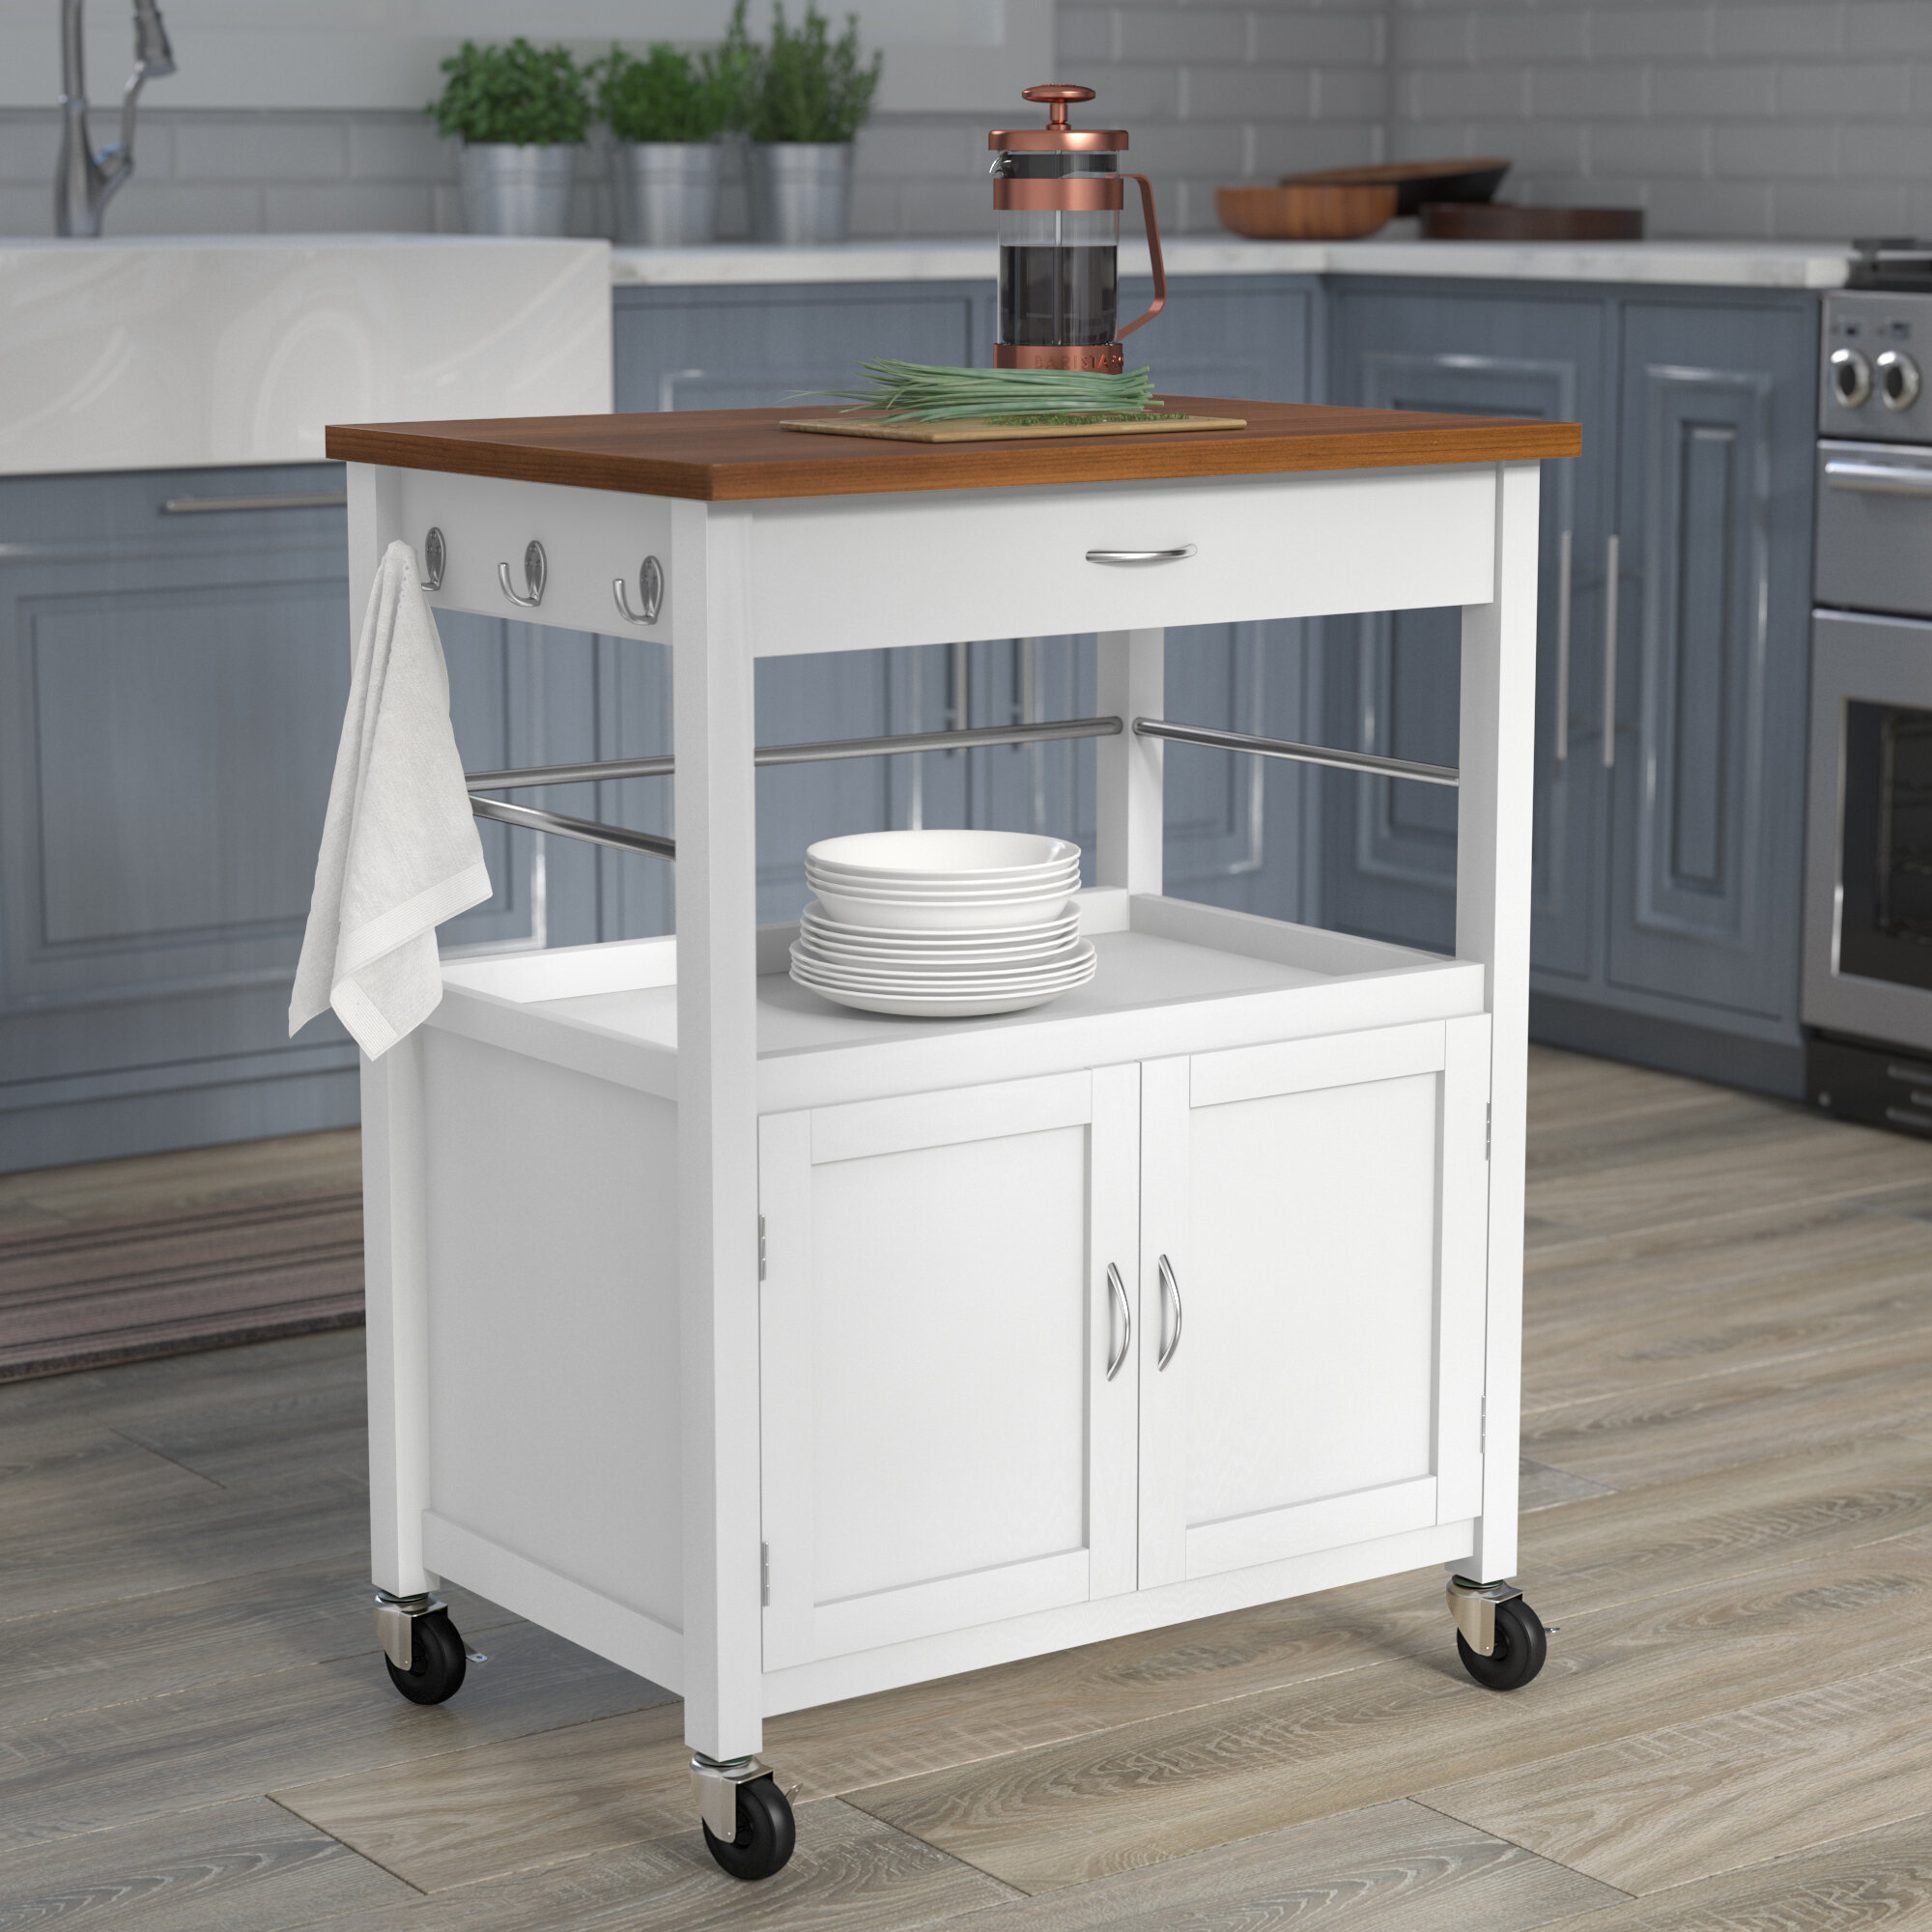 Andover Mills Kibler Kitchen Island Cart With Natural Butcher Block Bamboo Top Reviews Wayfair